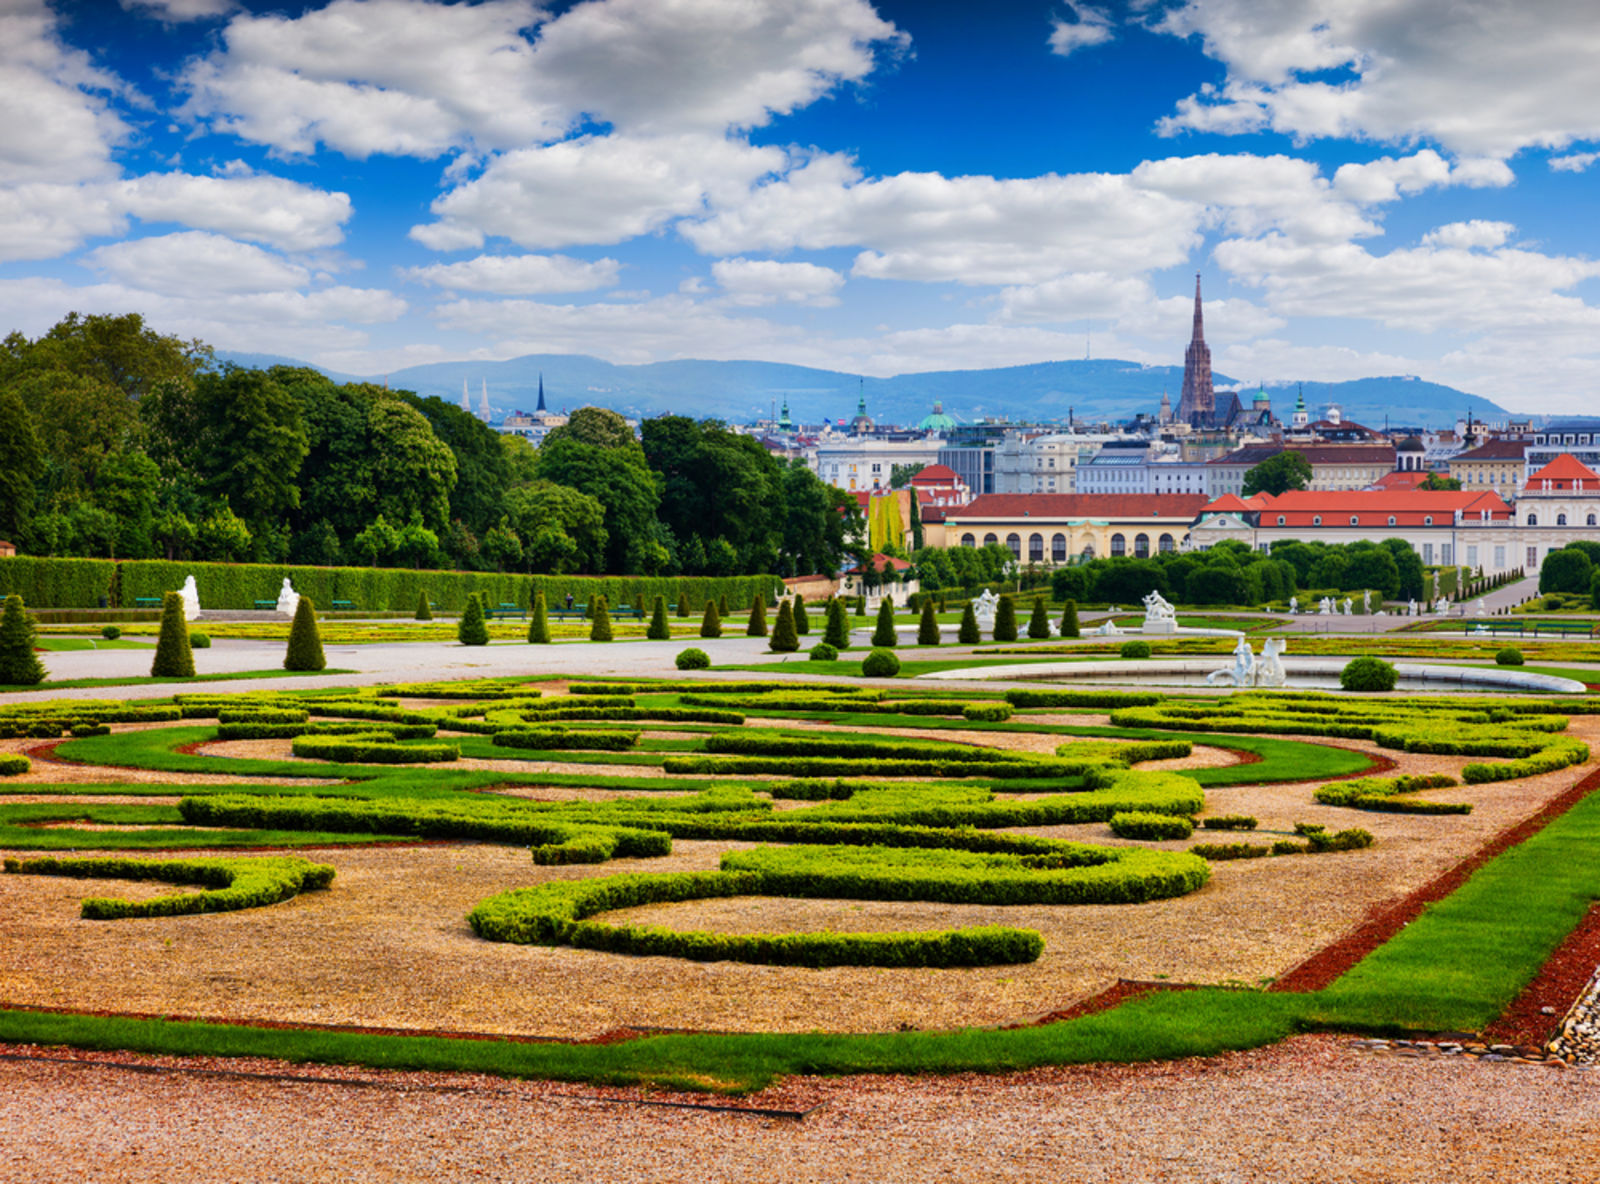 Impressions and Other Assets/Vienna_Austria_shutterstock_428813284_j75qne